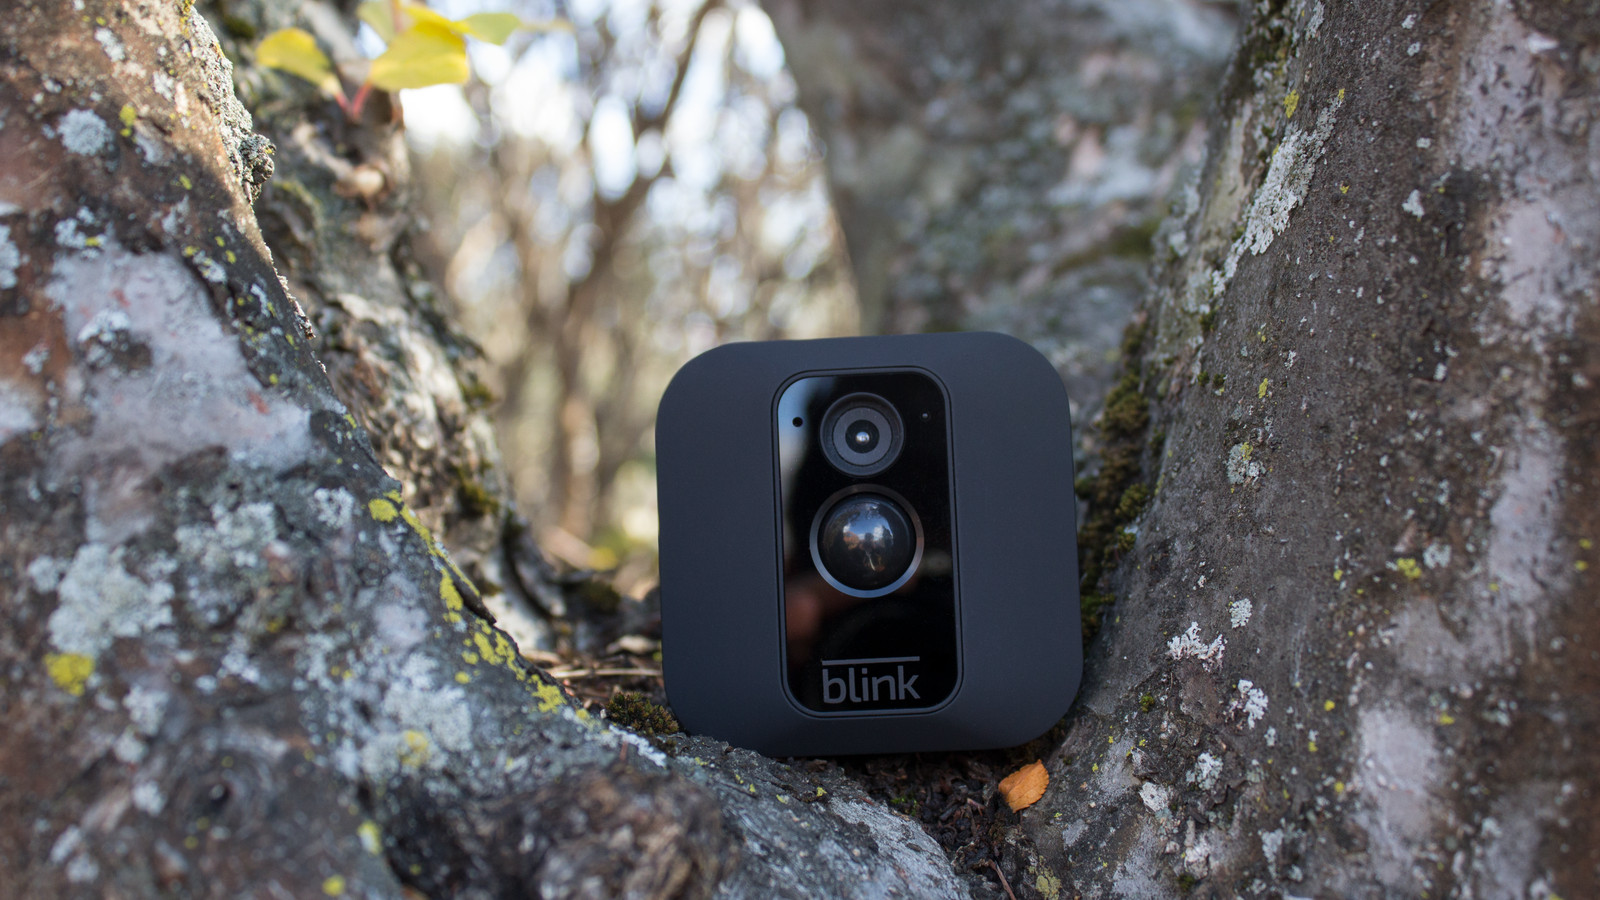 Blink's newest security camera can be hidden in a tree